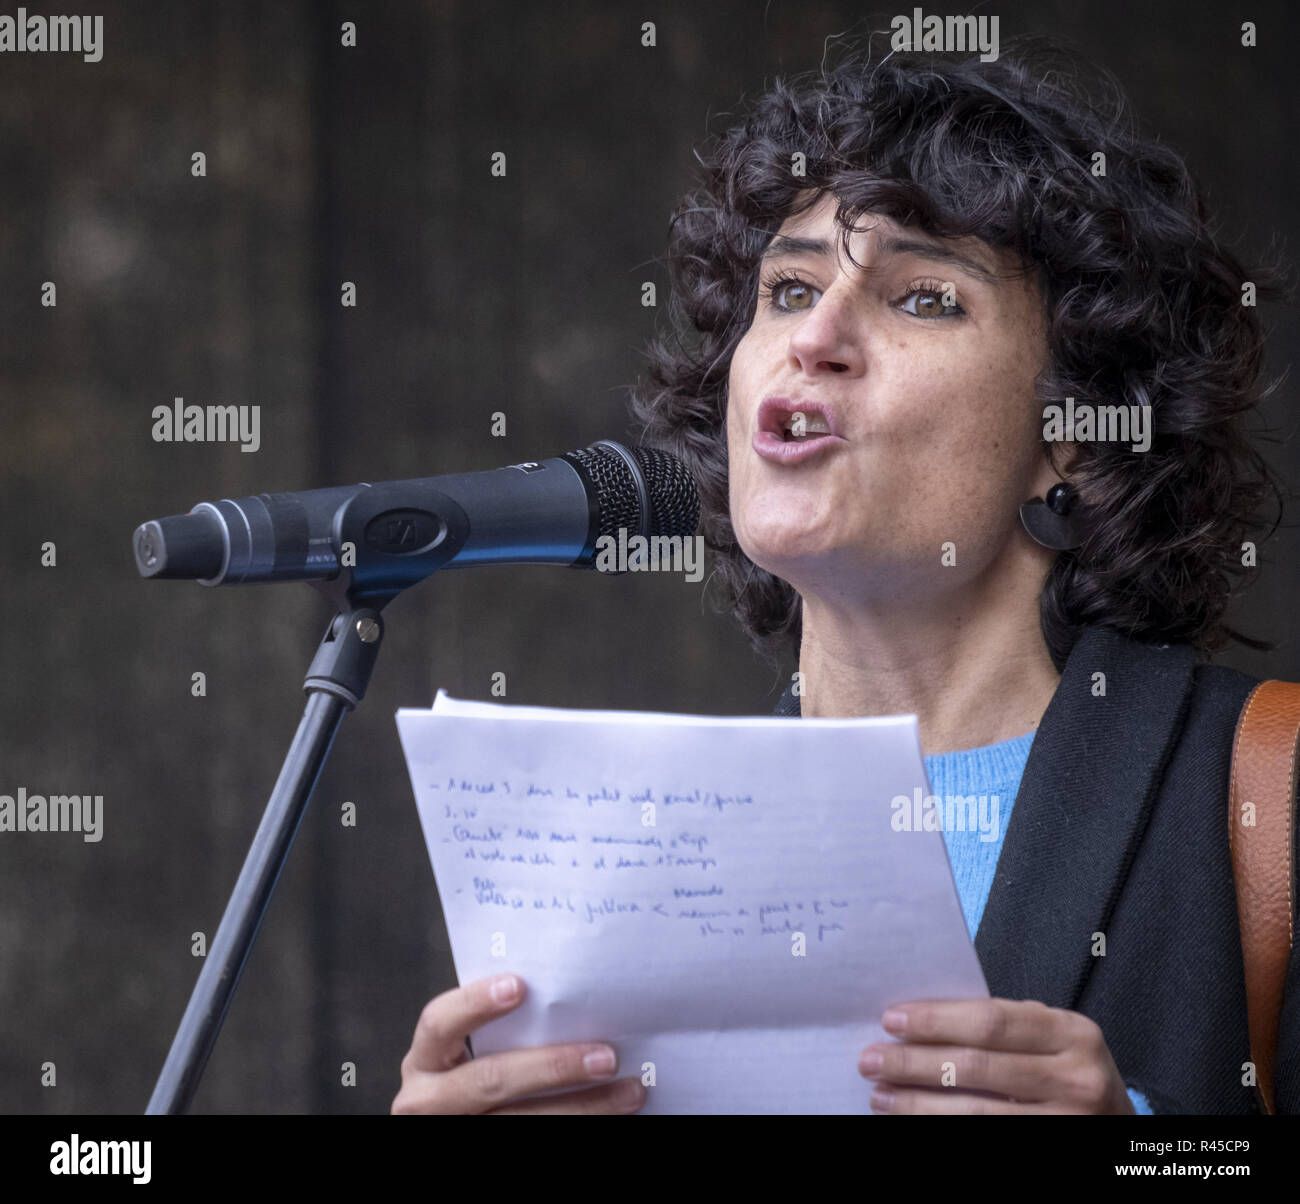 Barcelona, Catalonia, Spain. 25th Nov, 2018. Cultural journalist Júlia Bertran is seen reading the manifesto of the demonstration during the protest.Thousands of people have taken to the streets in Barcelona on the occasion of the International Day for the Elimination of Violence against Women. Credit: Paco Freire/SOPA Images/ZUMA Wire/Alamy Live News - Stock Image